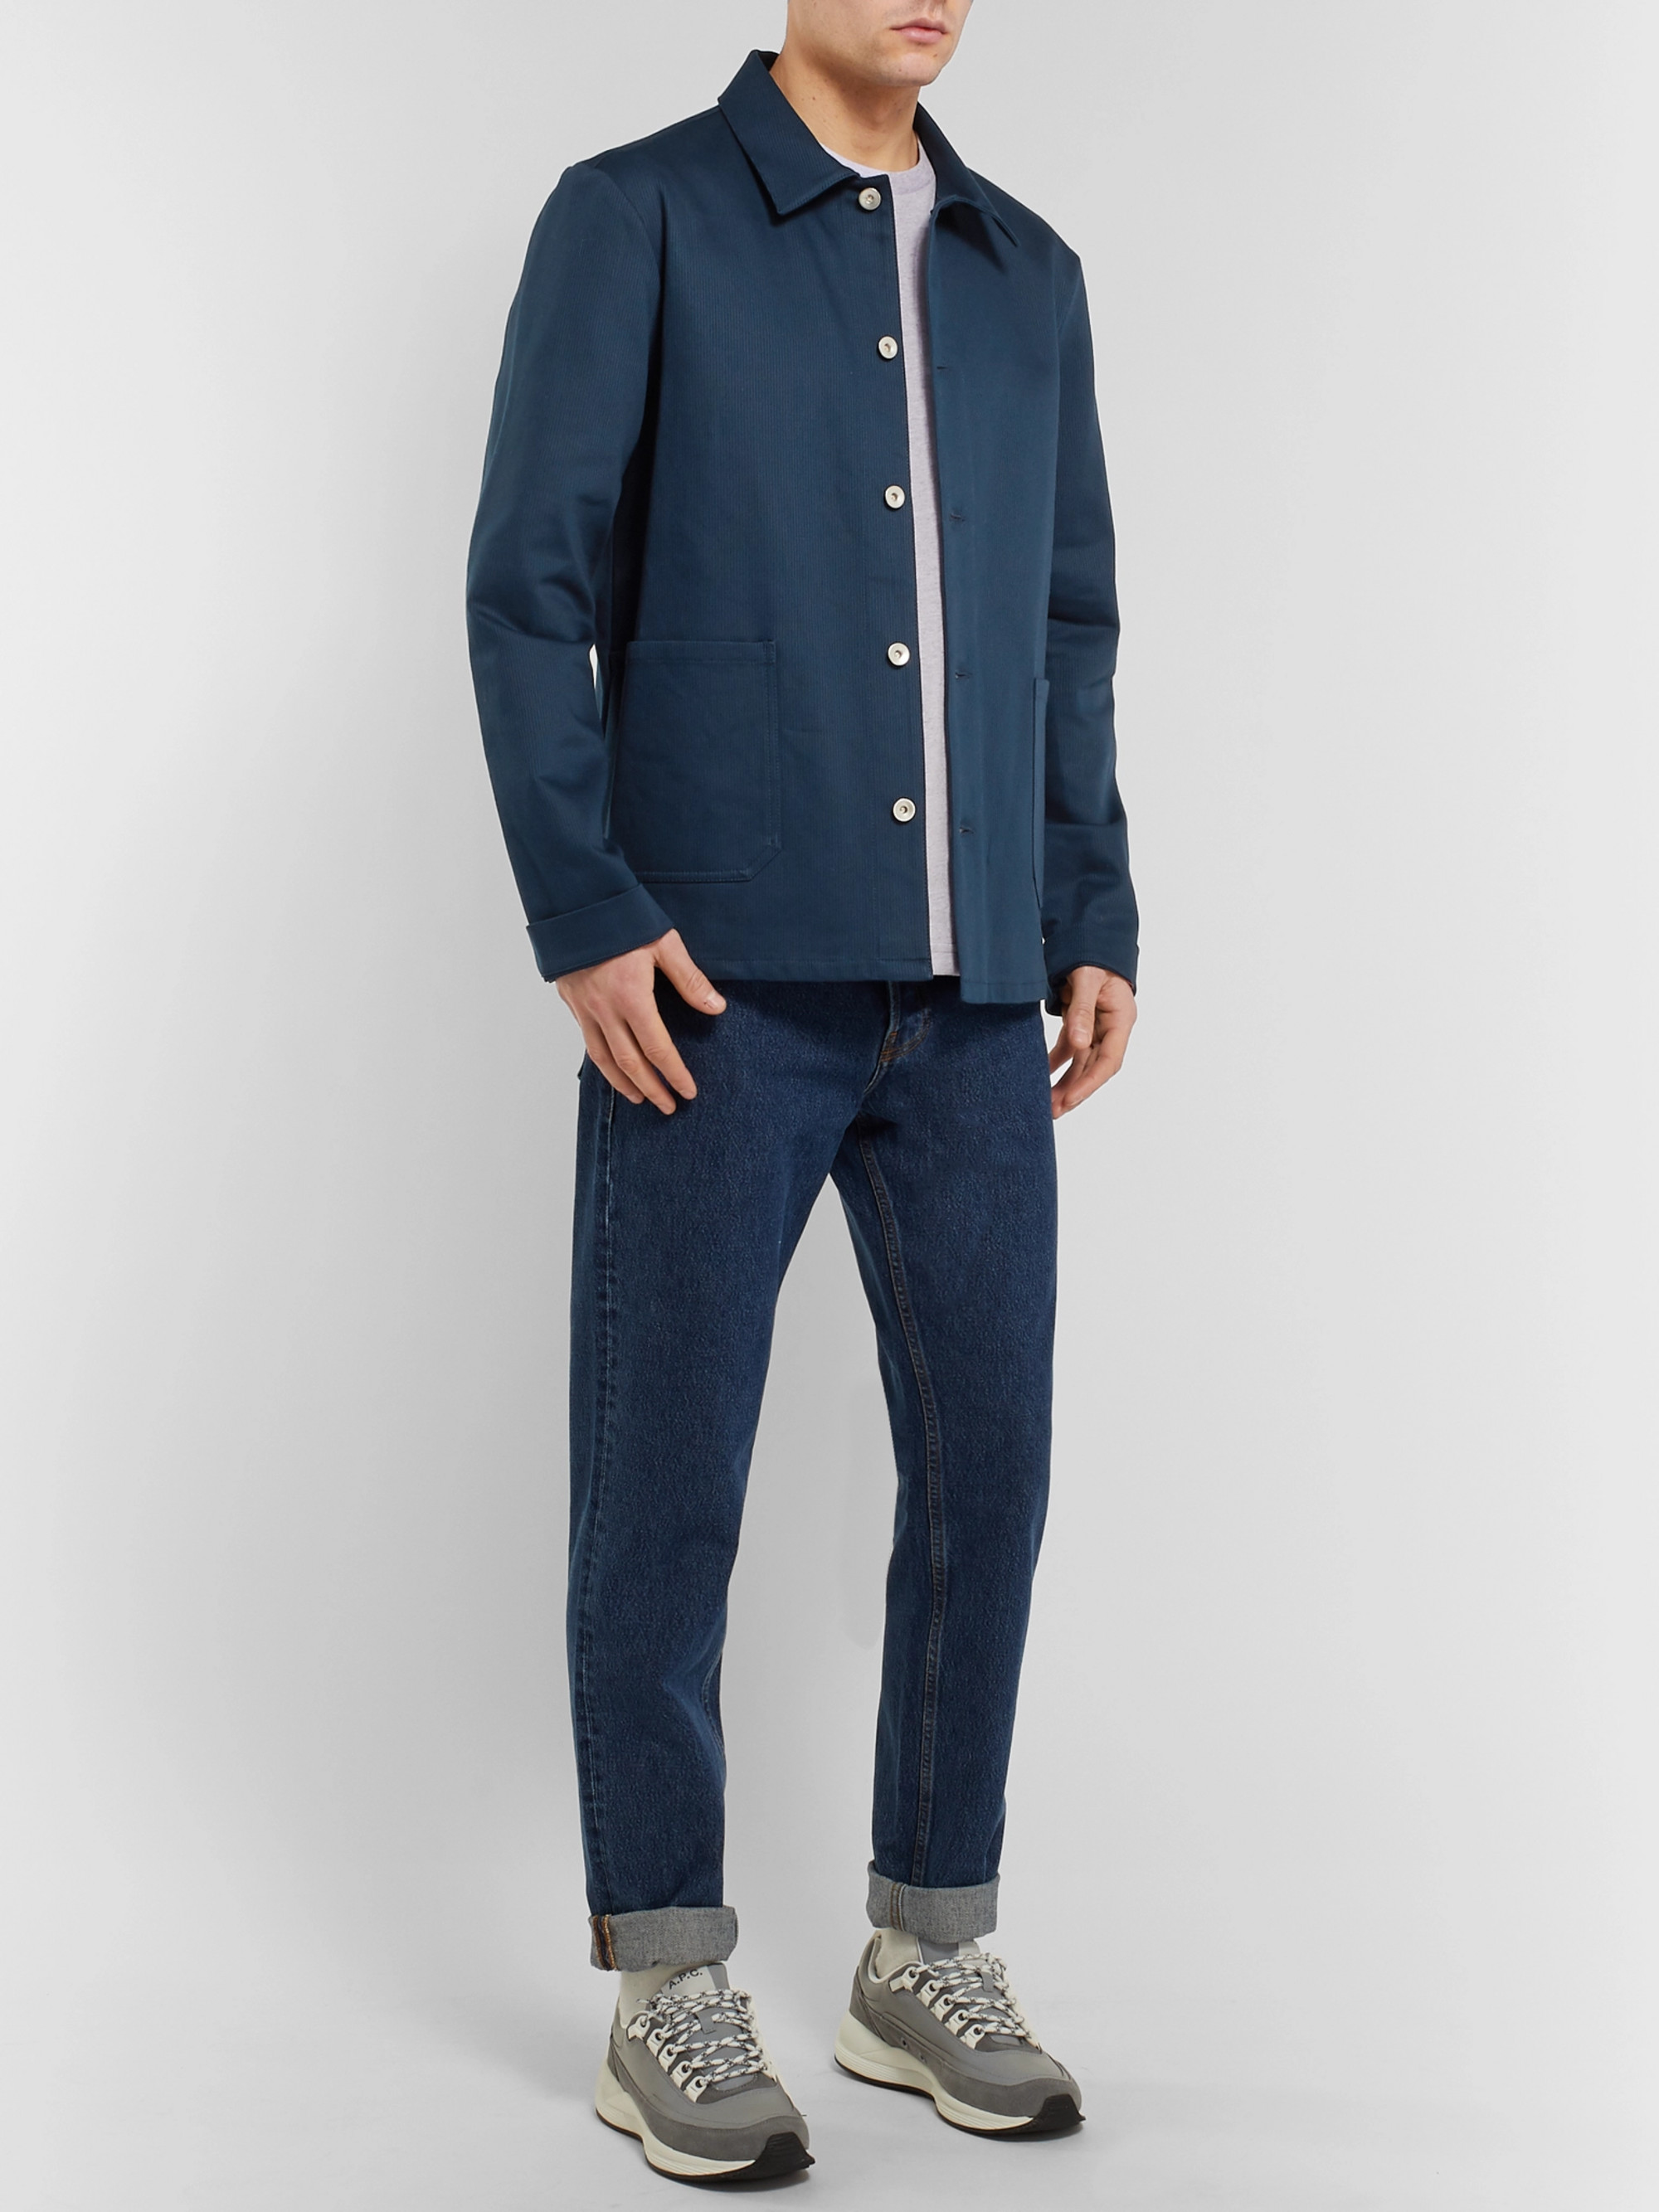 A.P.C. Kerlouan Stretch-Cotton Chore Jacket